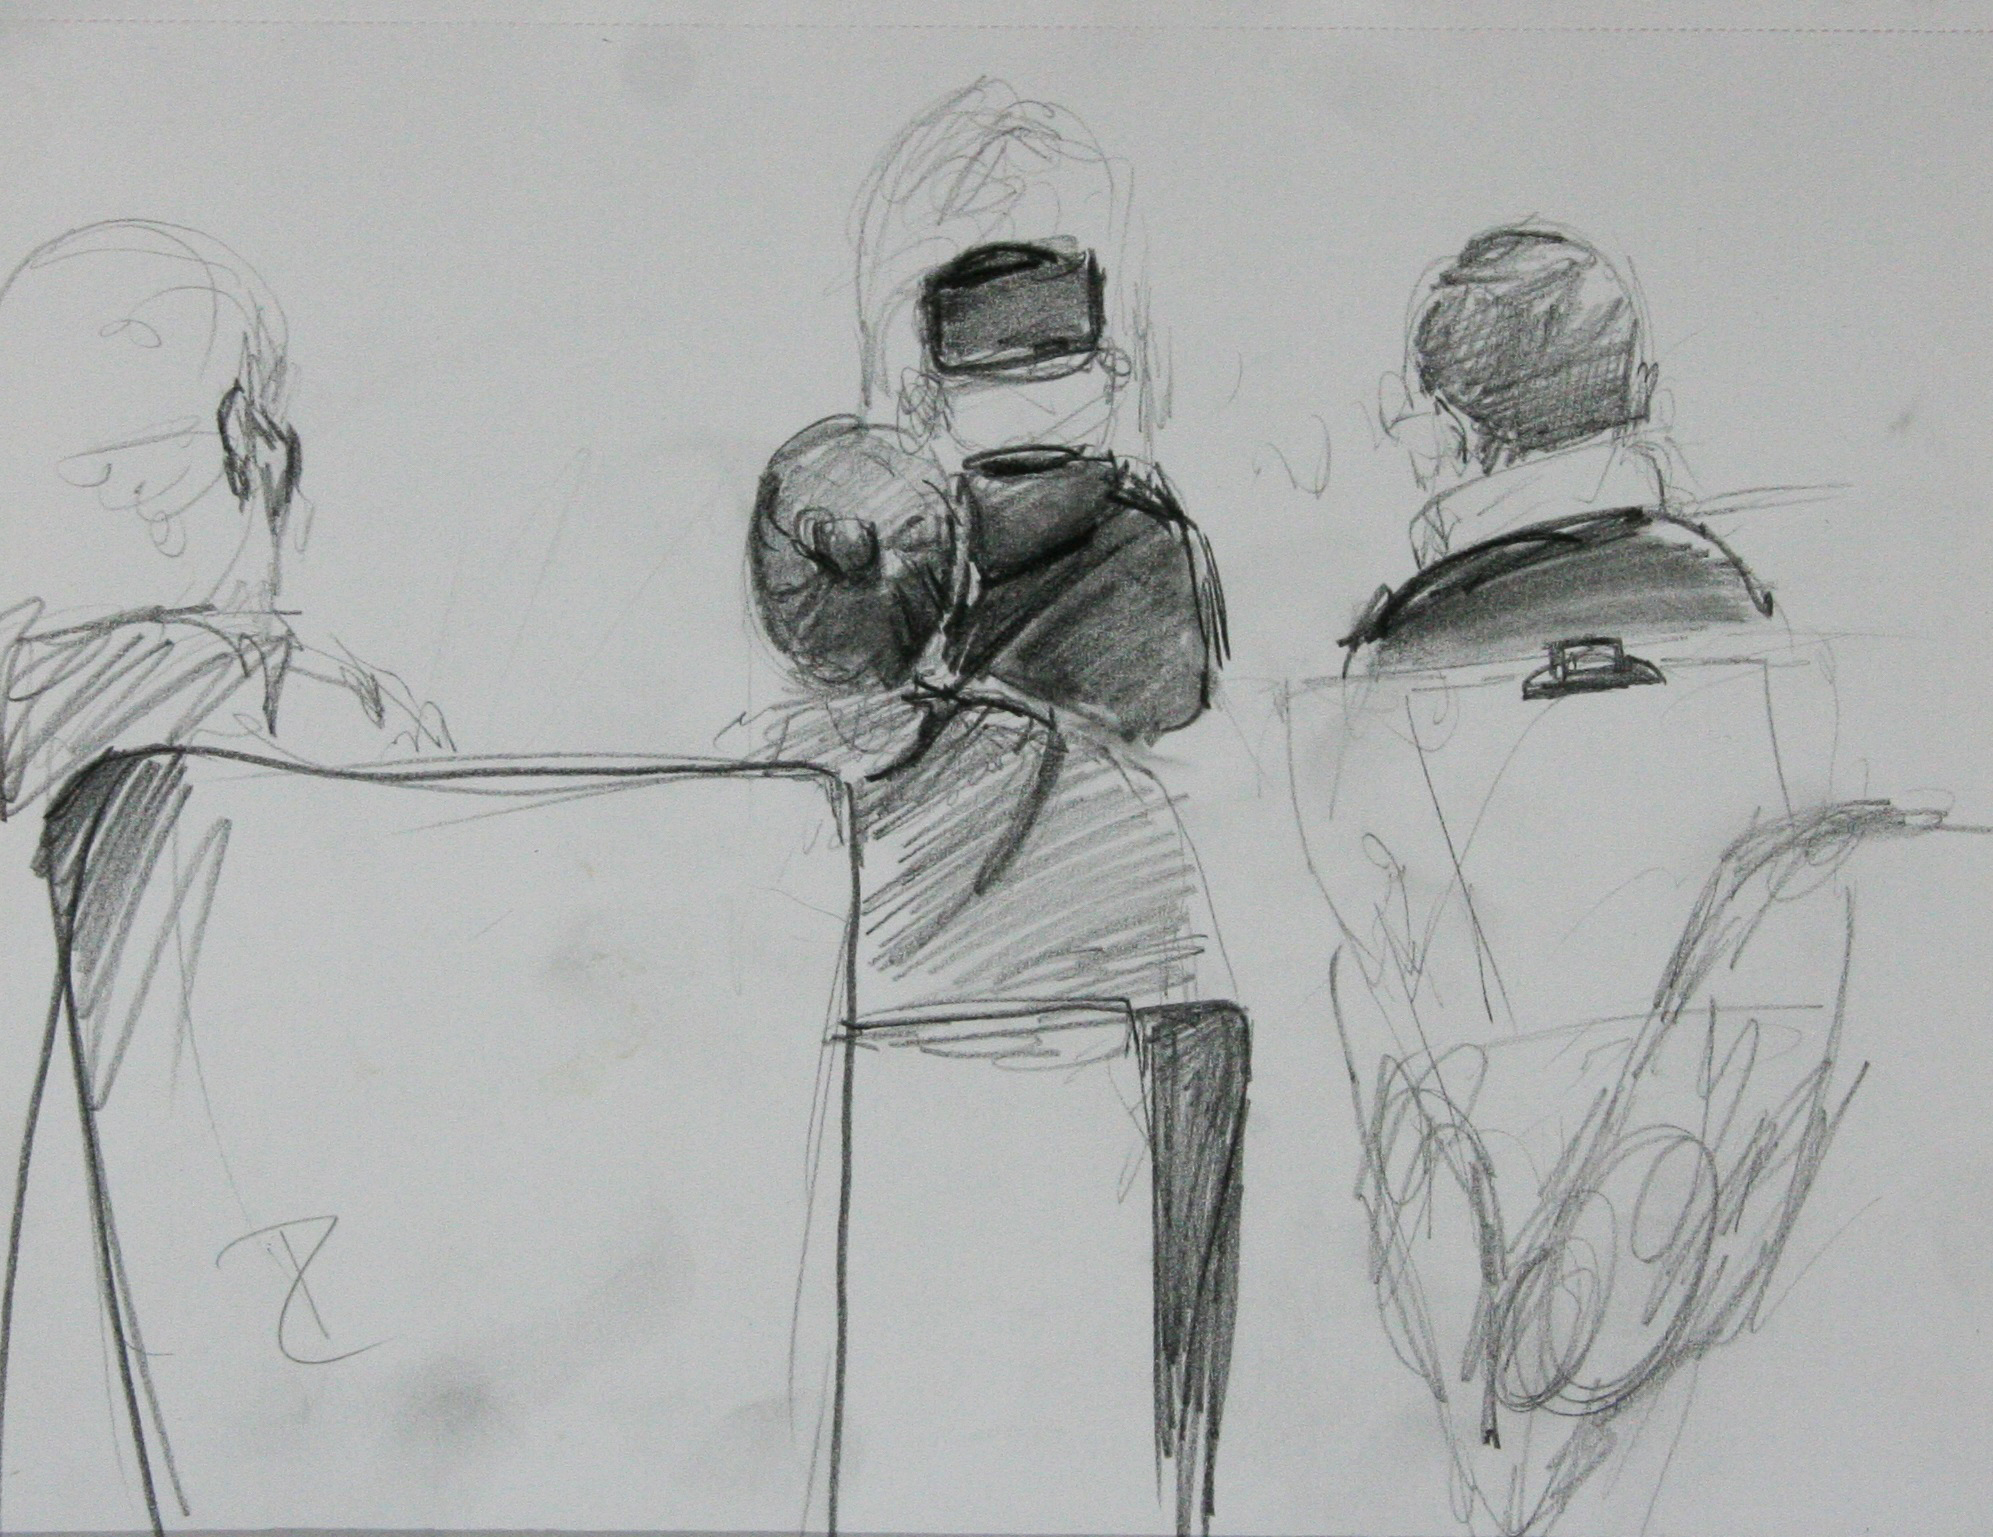 Diane Zizka did this drawing of the artists drawing Eileen.